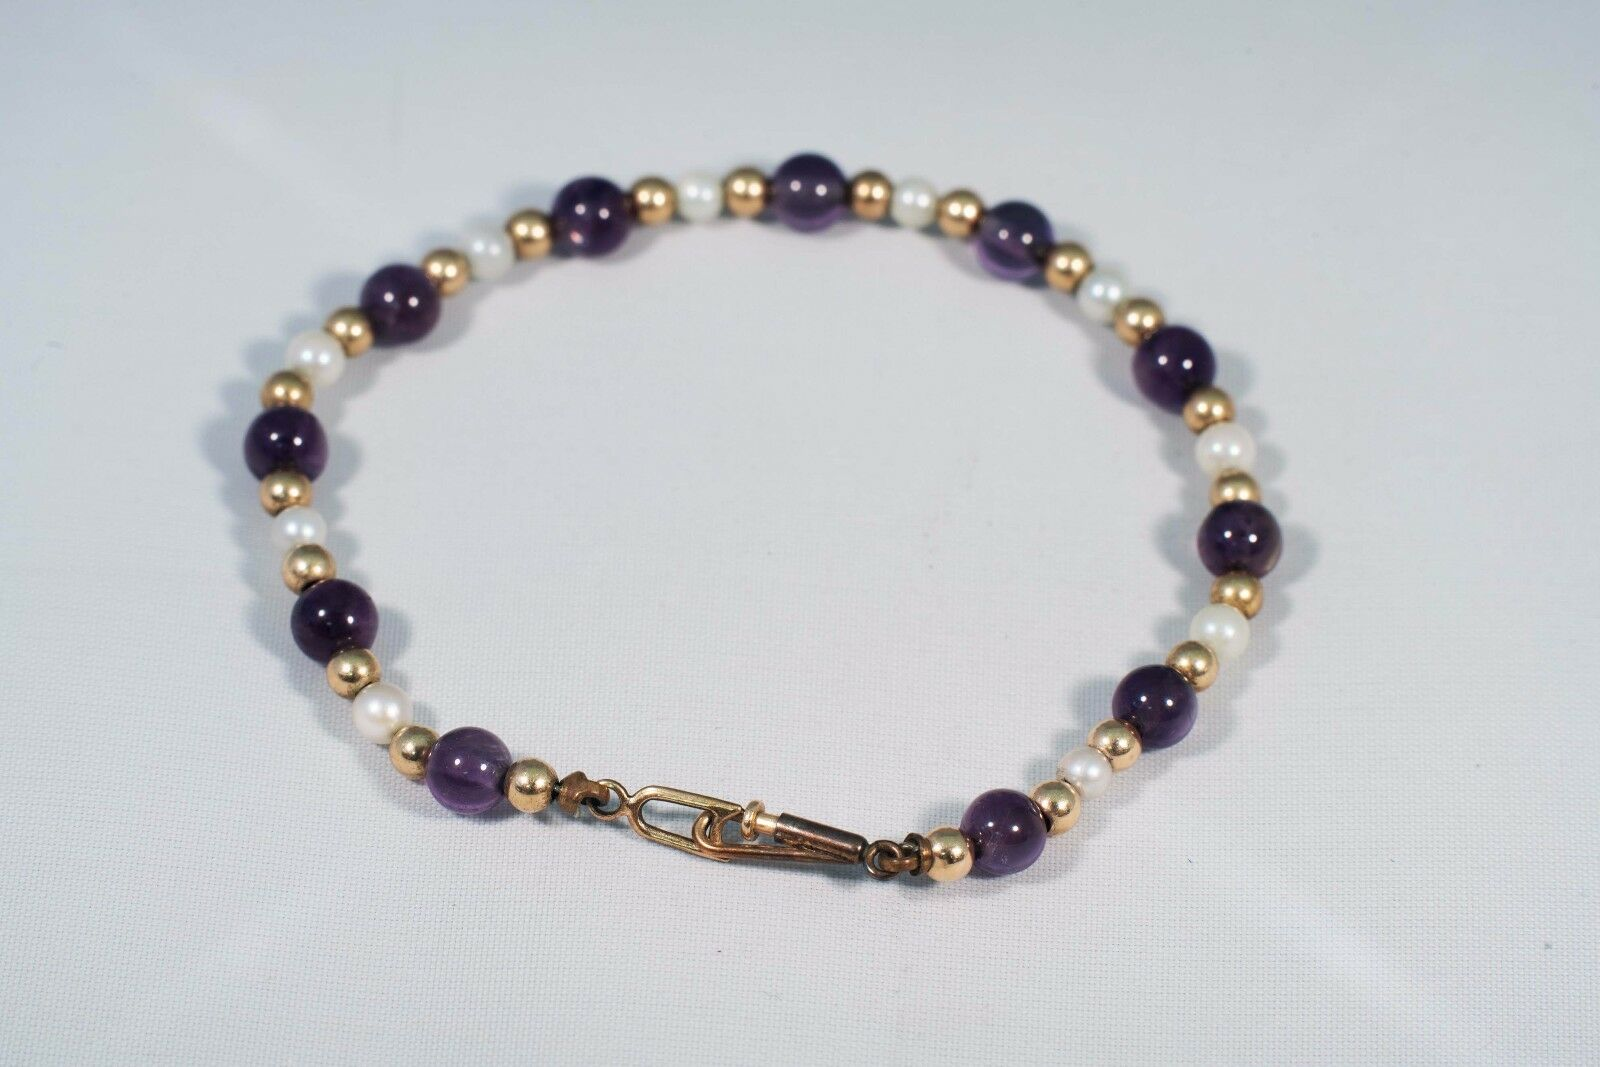 14K Yellow gold Amethyst, Pearl and gold Bead Bracelet, 5.75  long